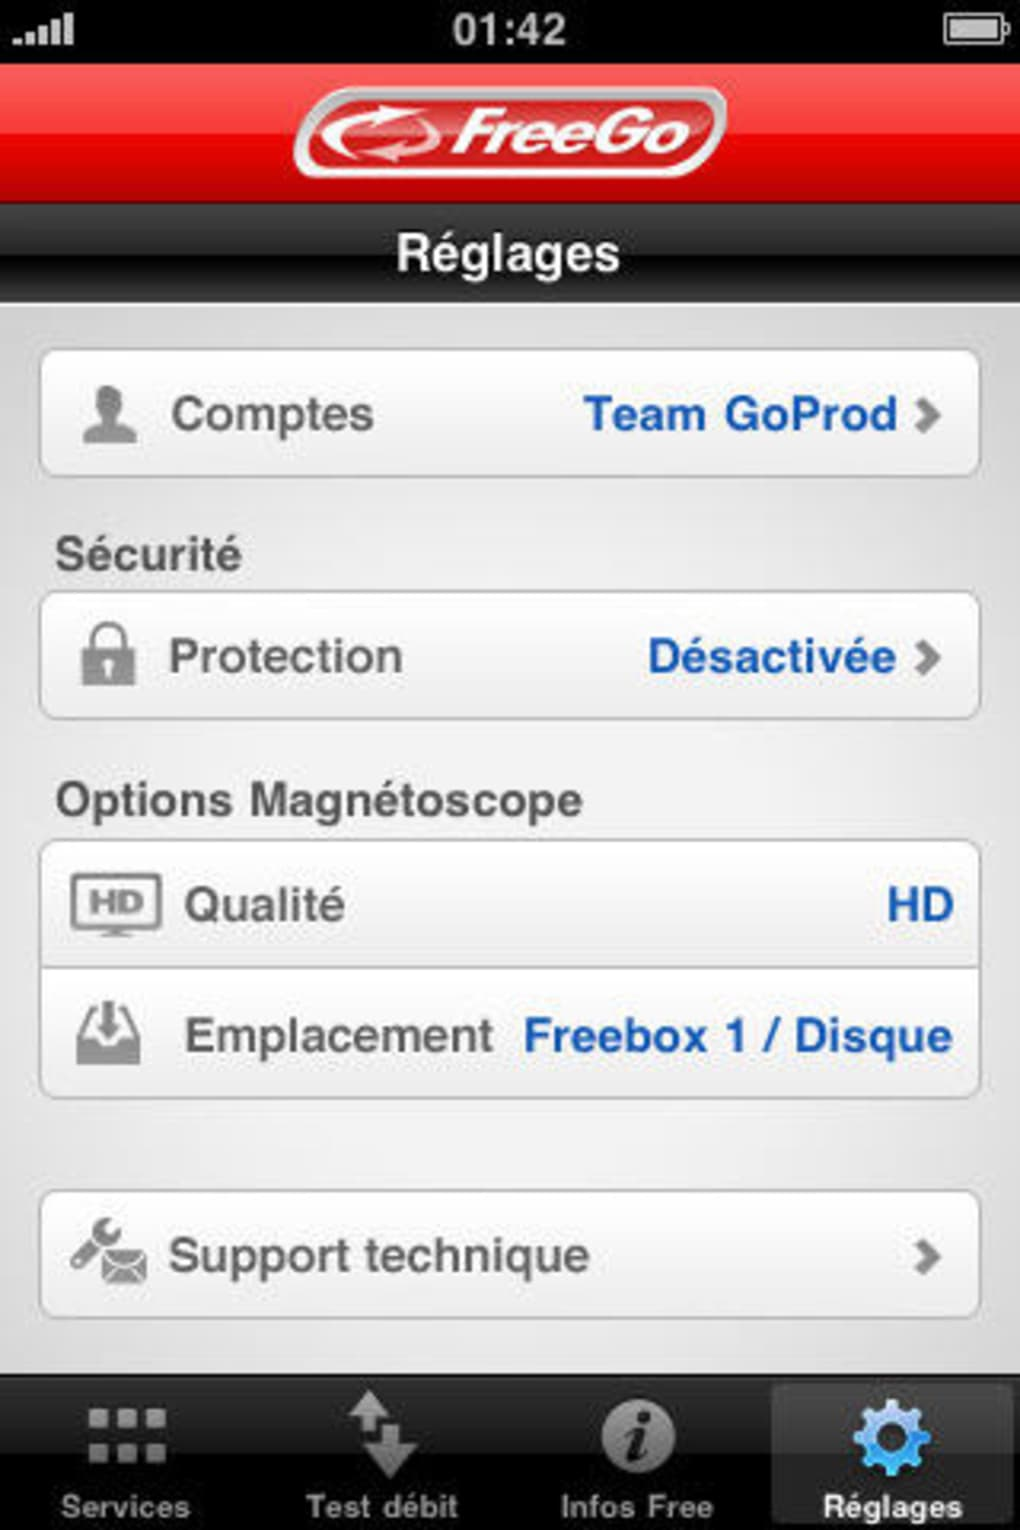 freego iphone